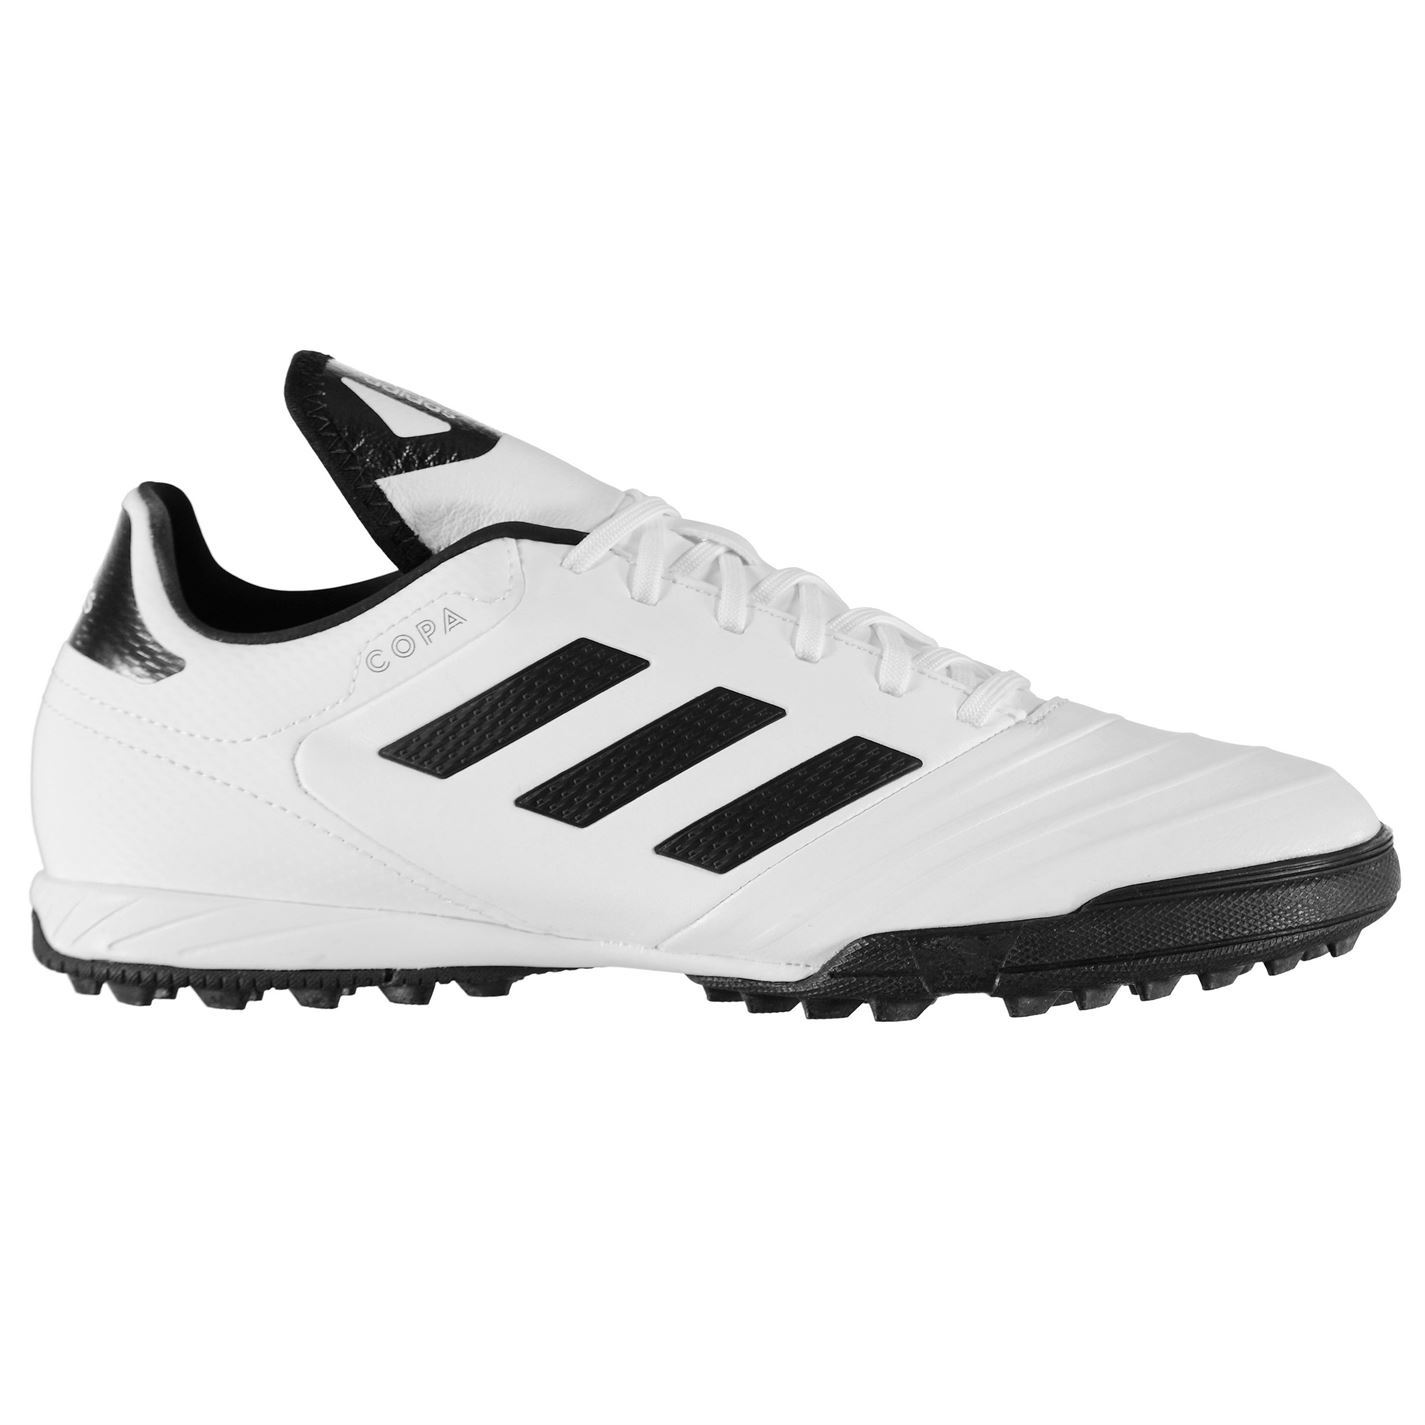 innovative design 1d879 64568 adidas Mens Copa Tango 18.3 Astro Turf Trainers Football Boots Lace Up  Padded